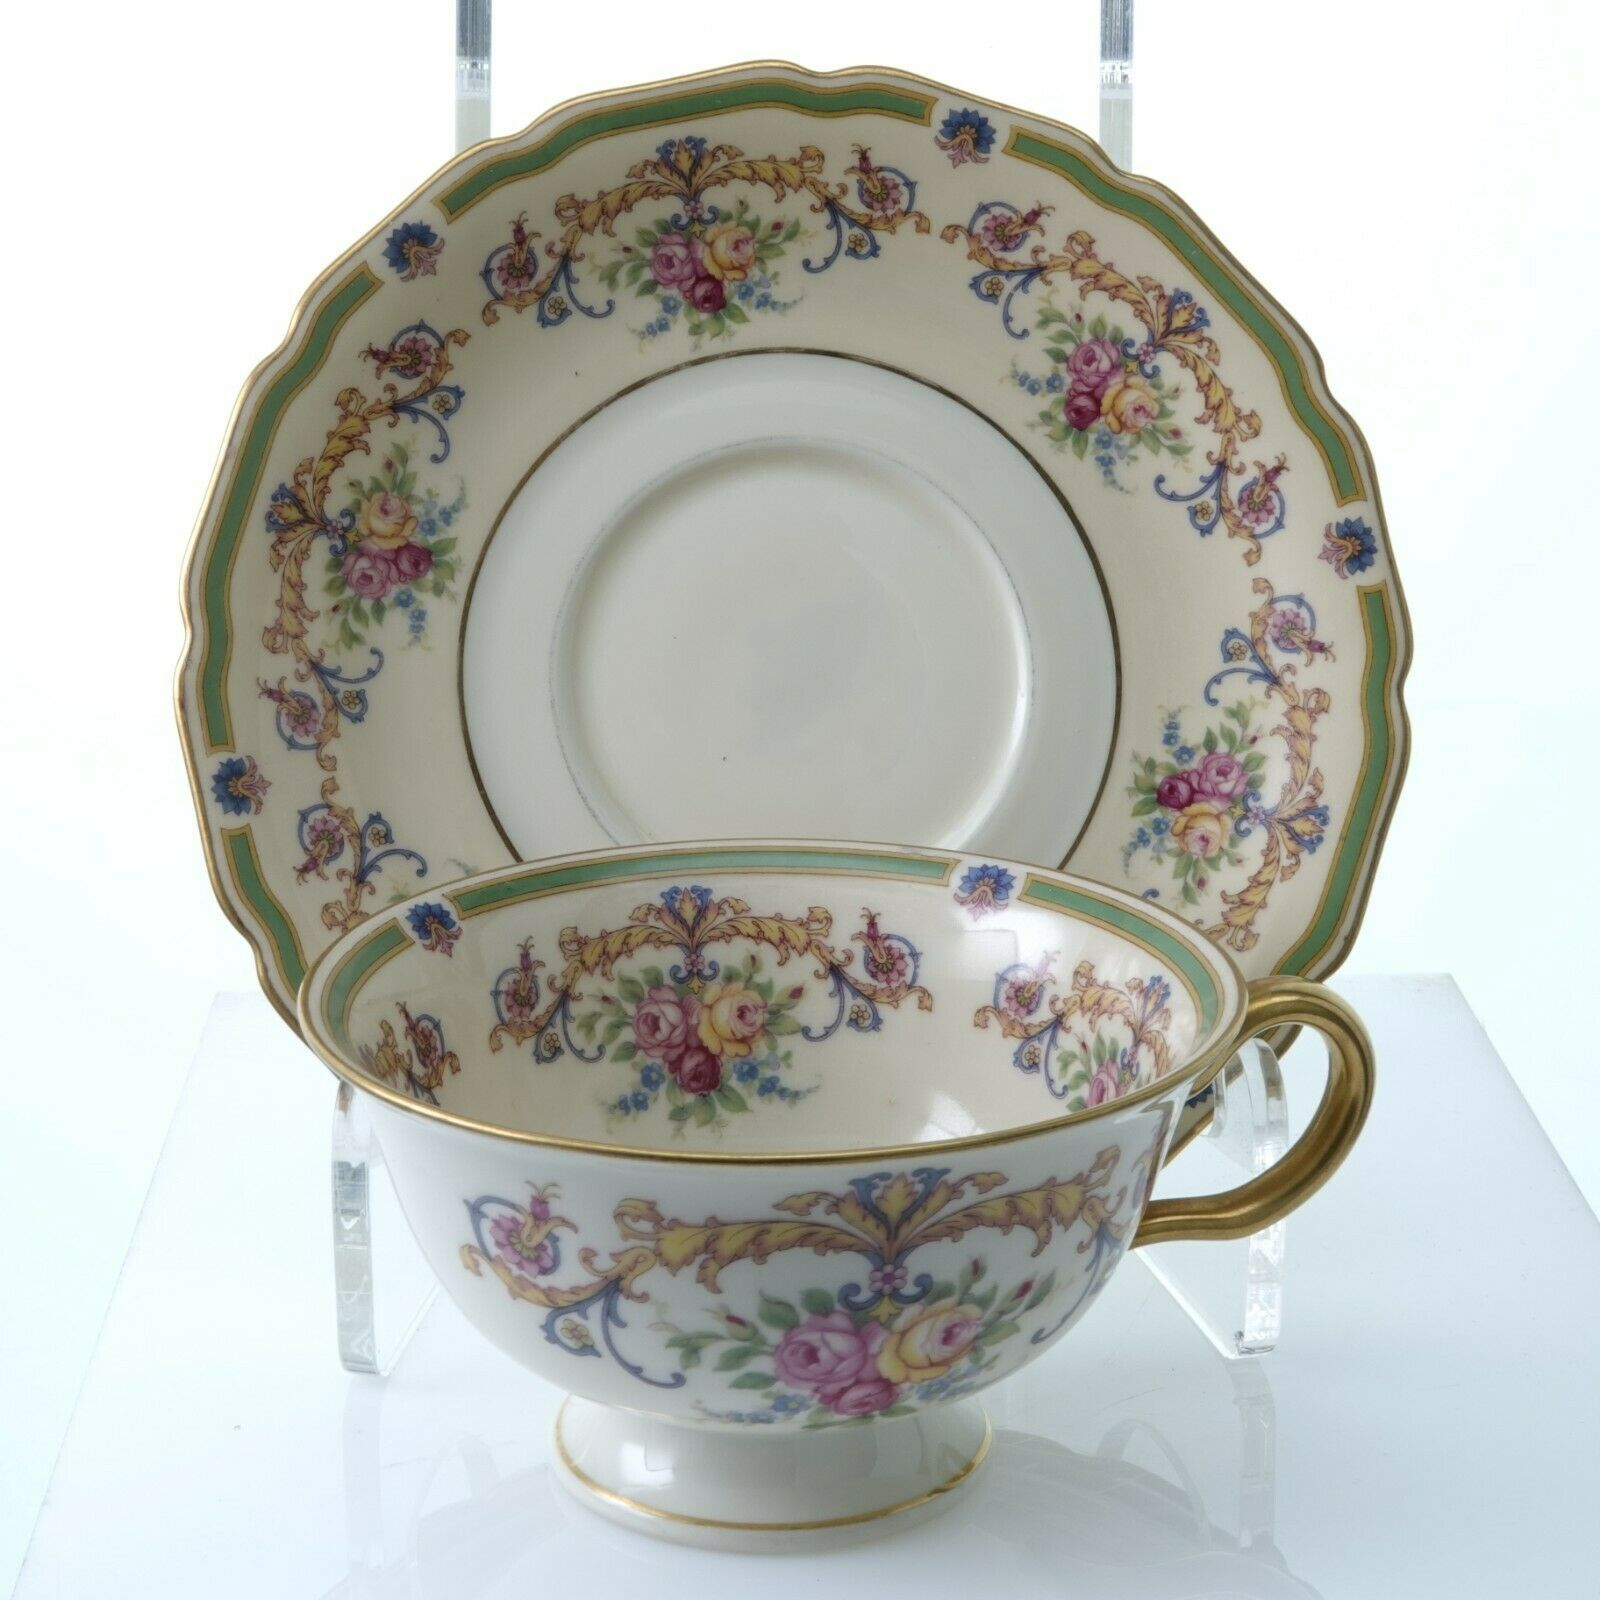 Primary image for Rosenthal WESTBURY Tea Cup and Saucer (Multiple Available)